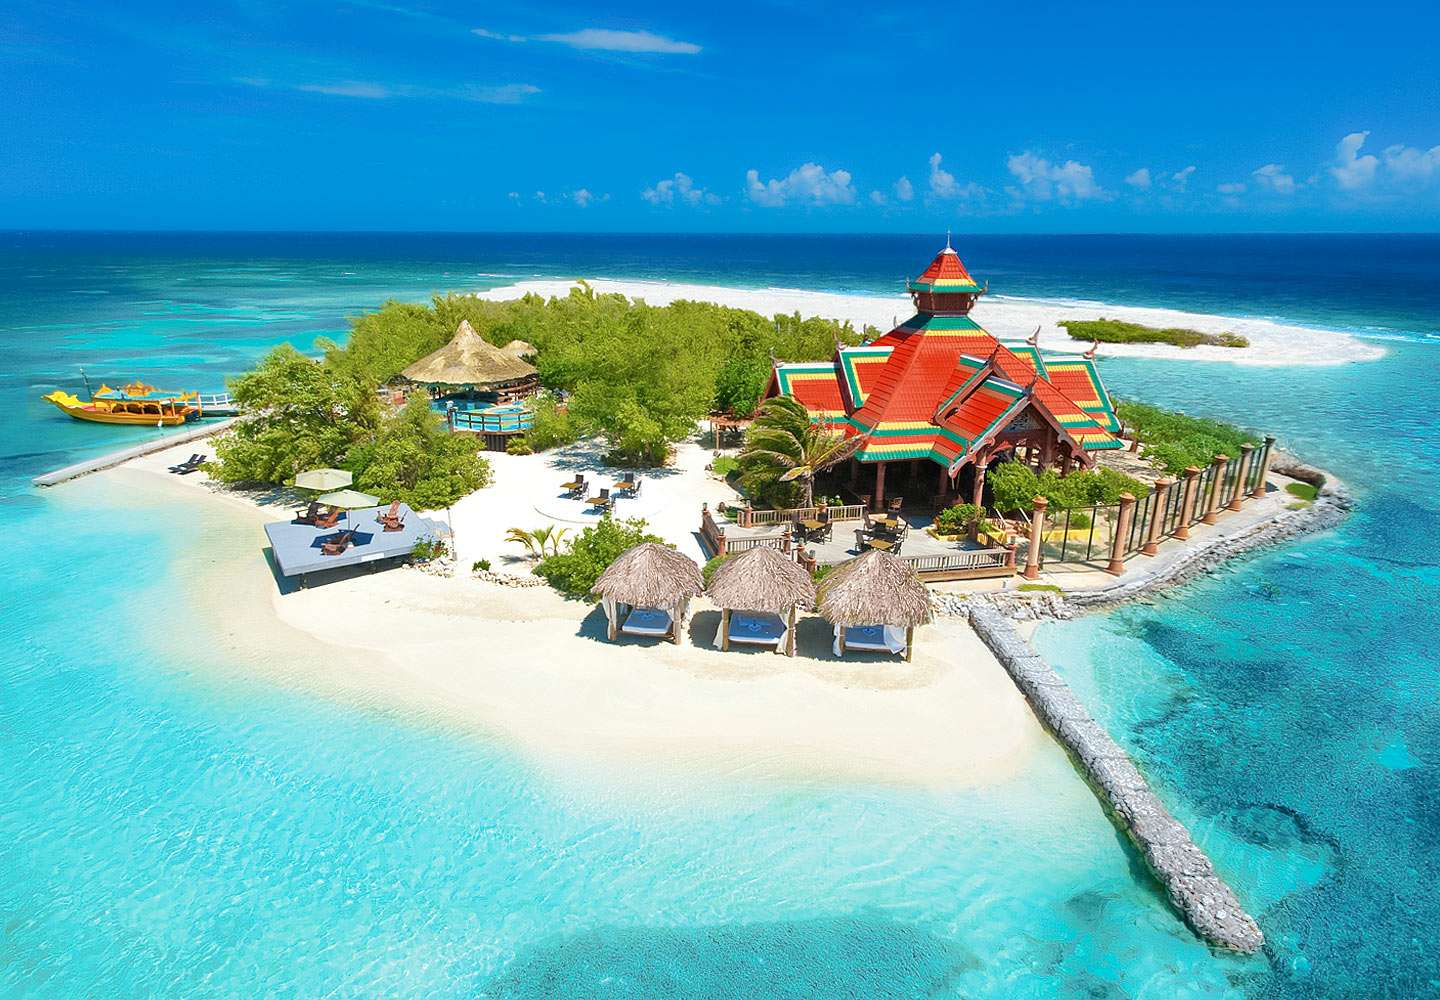 Image of Sandals Royal Caribbean Resort & Private Island, Saint James, Jamaica